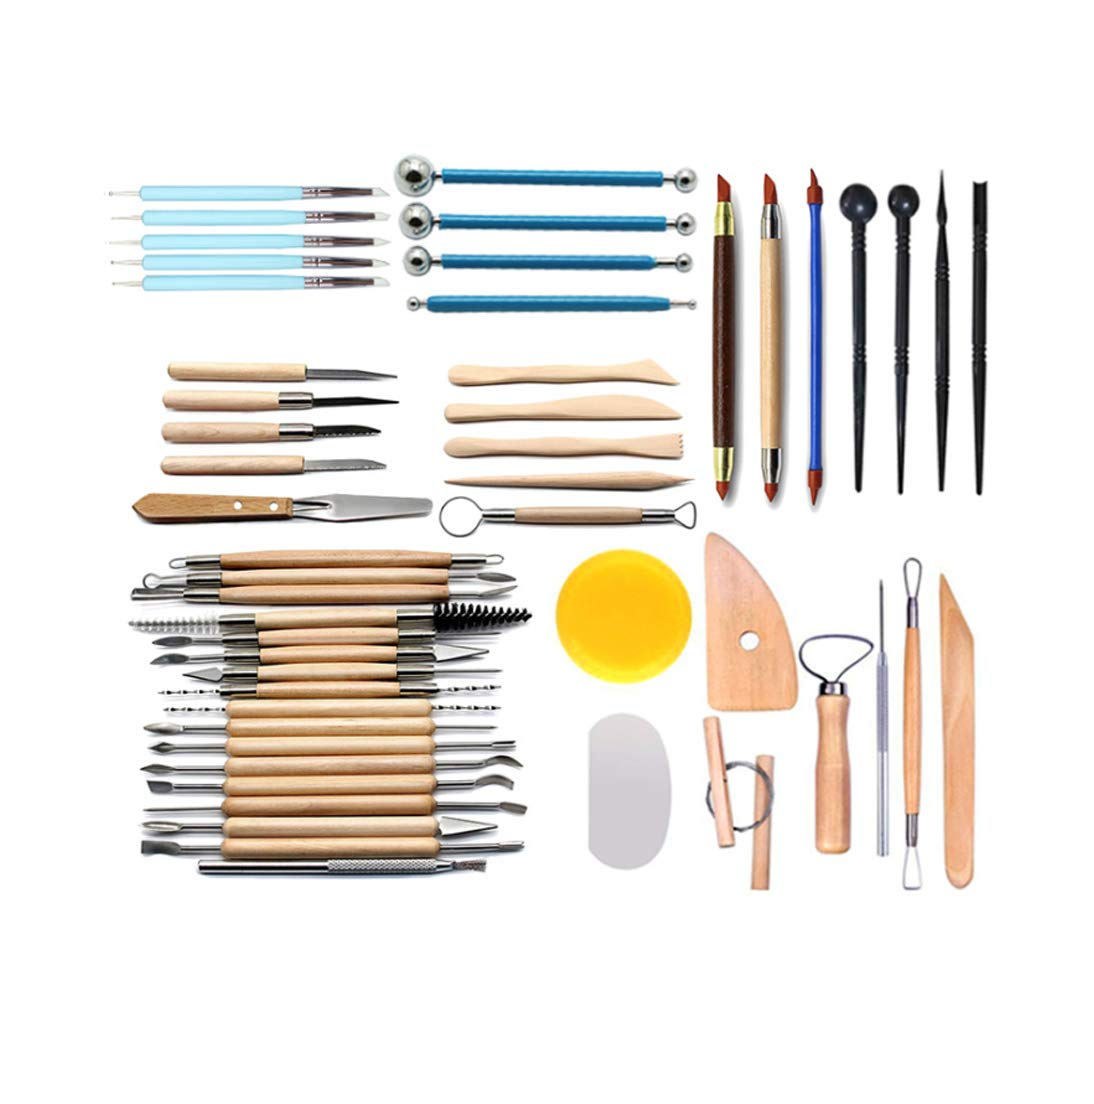 51PCS Polymer Modeling Clay Sculpting Tools, Dotting Pen, Silicone Tips, Ball Stylus, Pottery Ceramic Clay Indentation Tools Set Also for Cake Fondant Decoration and Nail Art (51PCS)